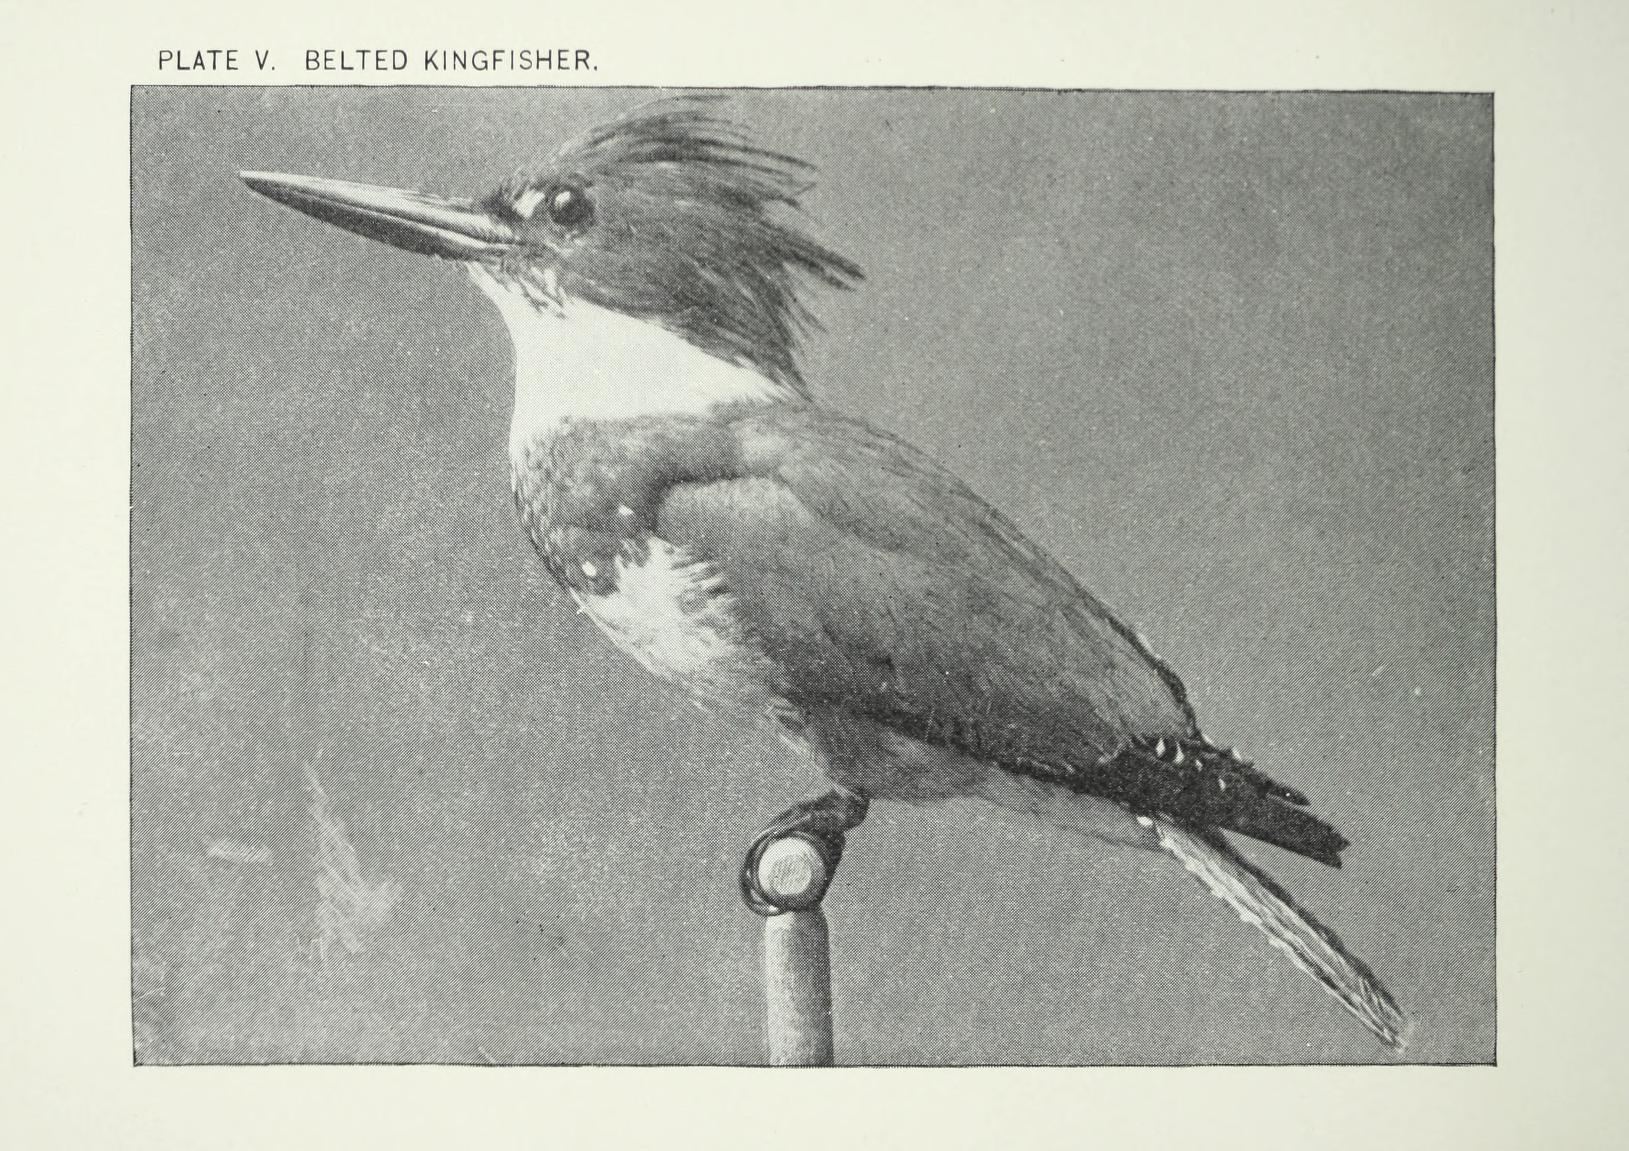 black and white photograph of a taxidermied specimen of a belted kingfisher, perched on a stand